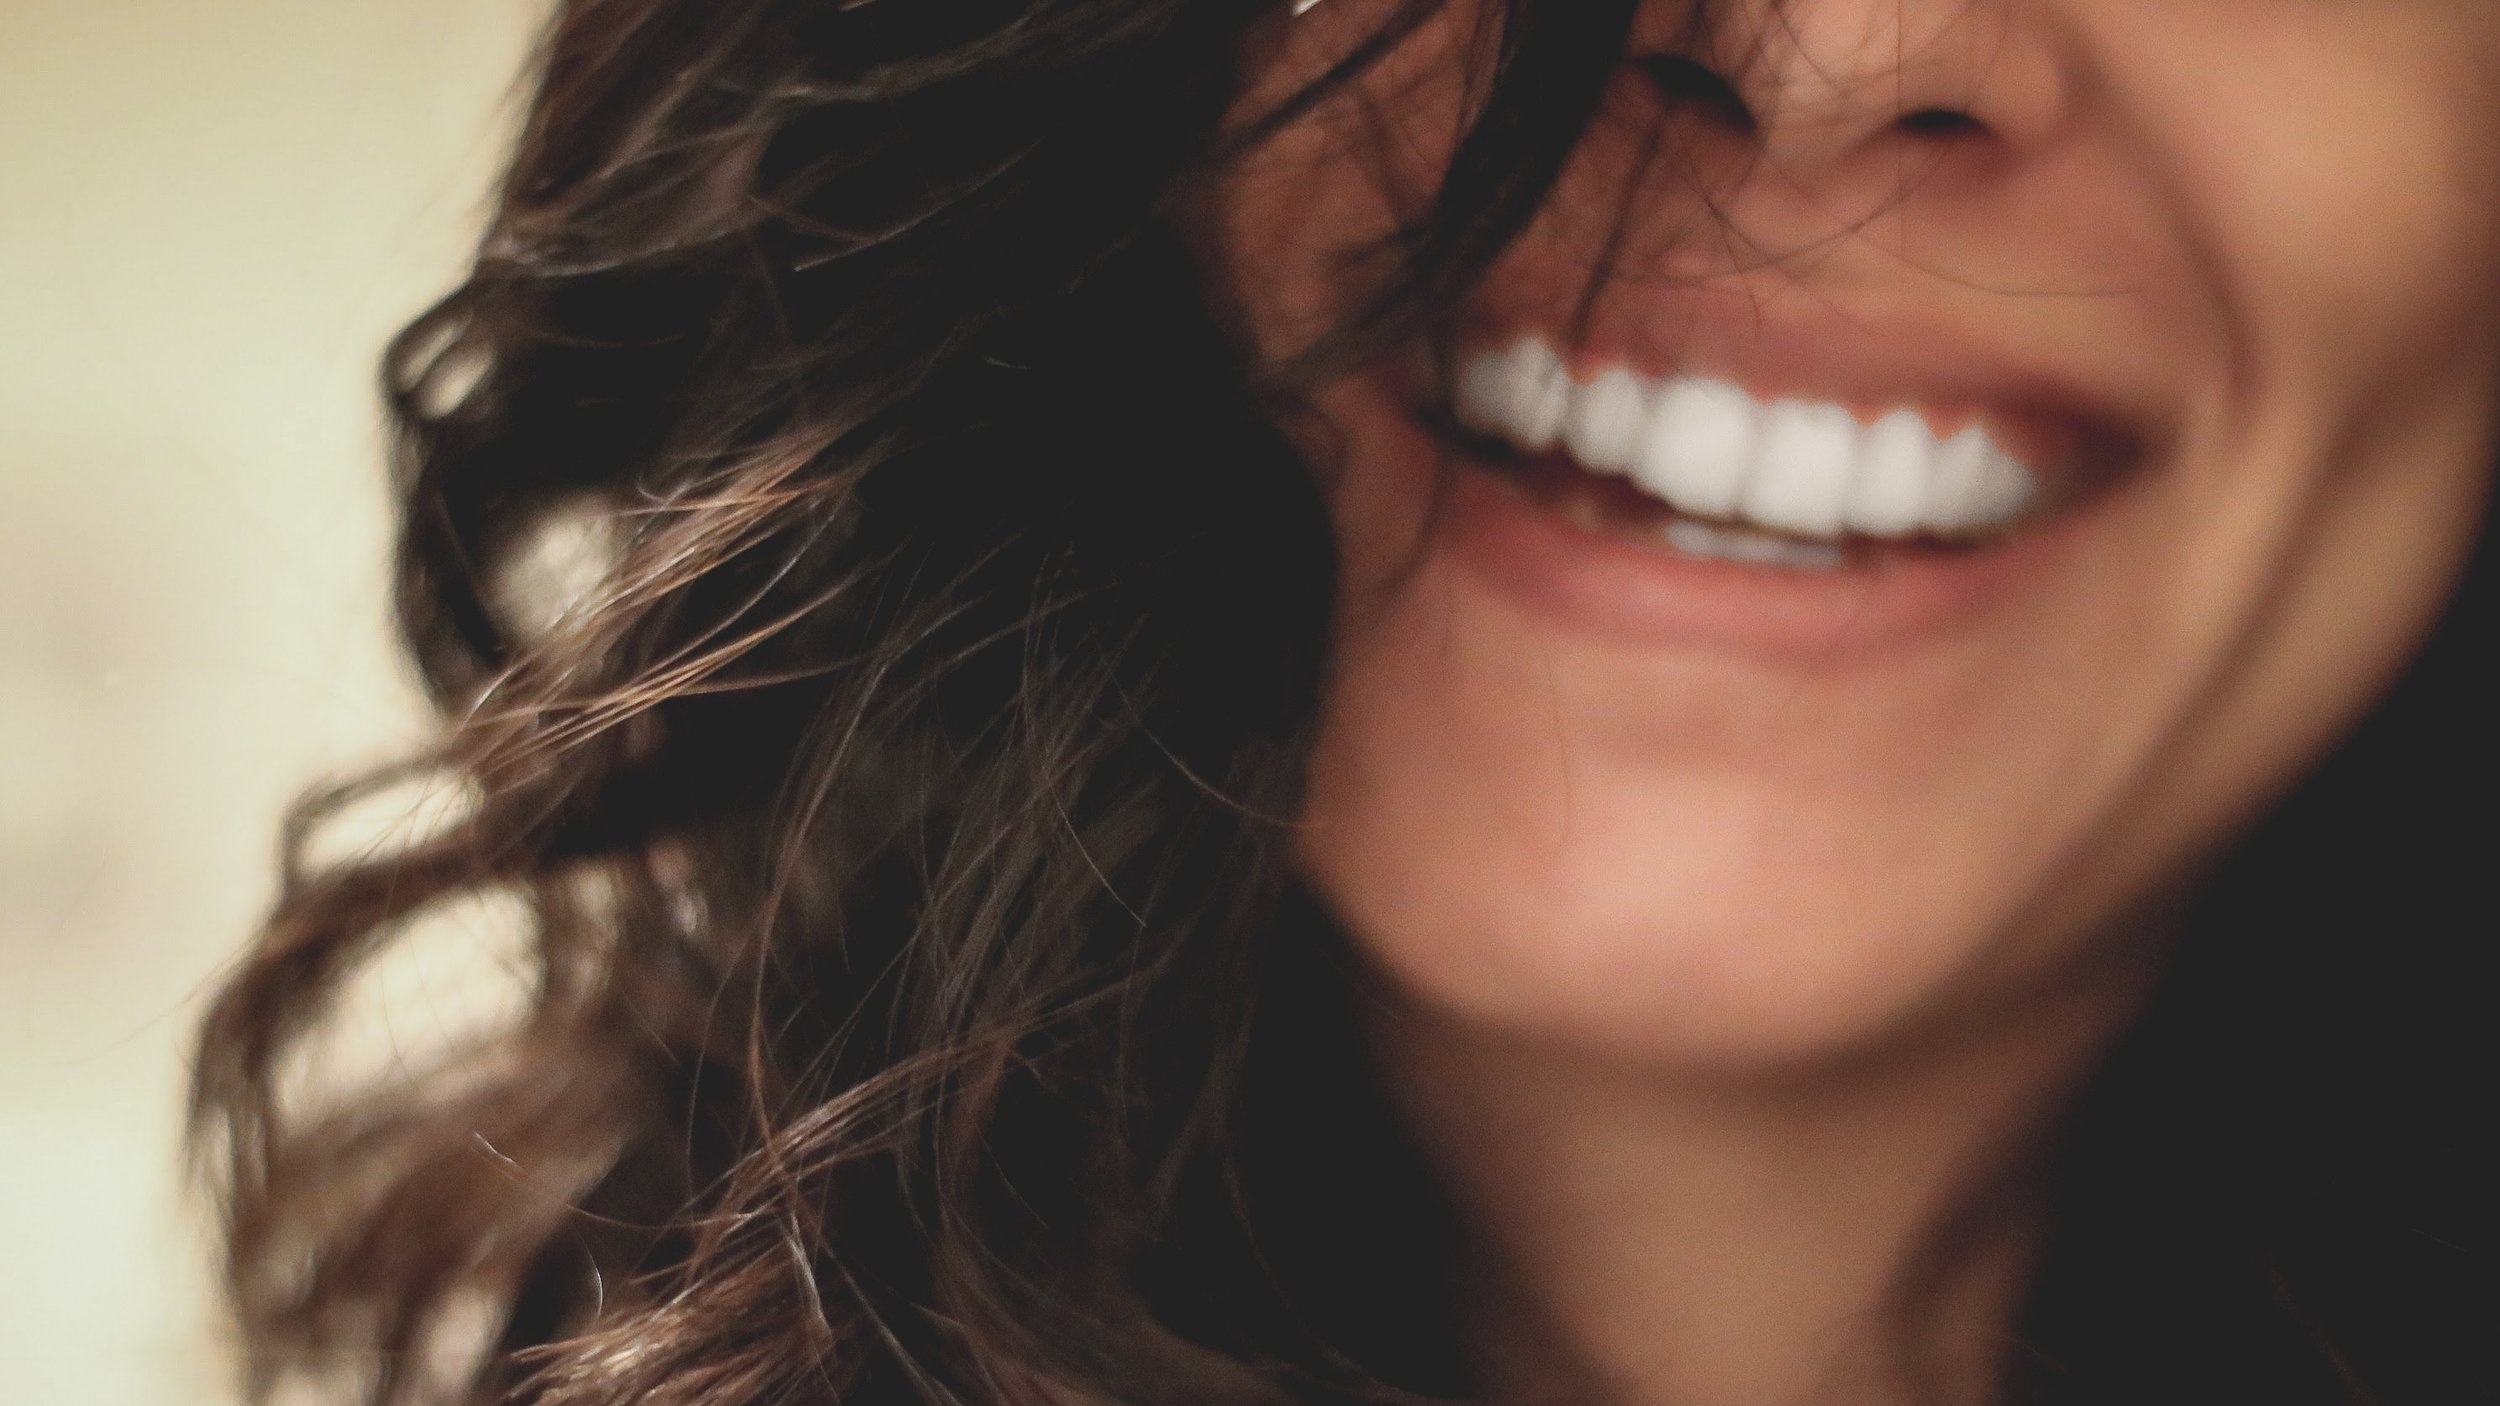 LET'S GIVE YOU A REASON TO SMILE -